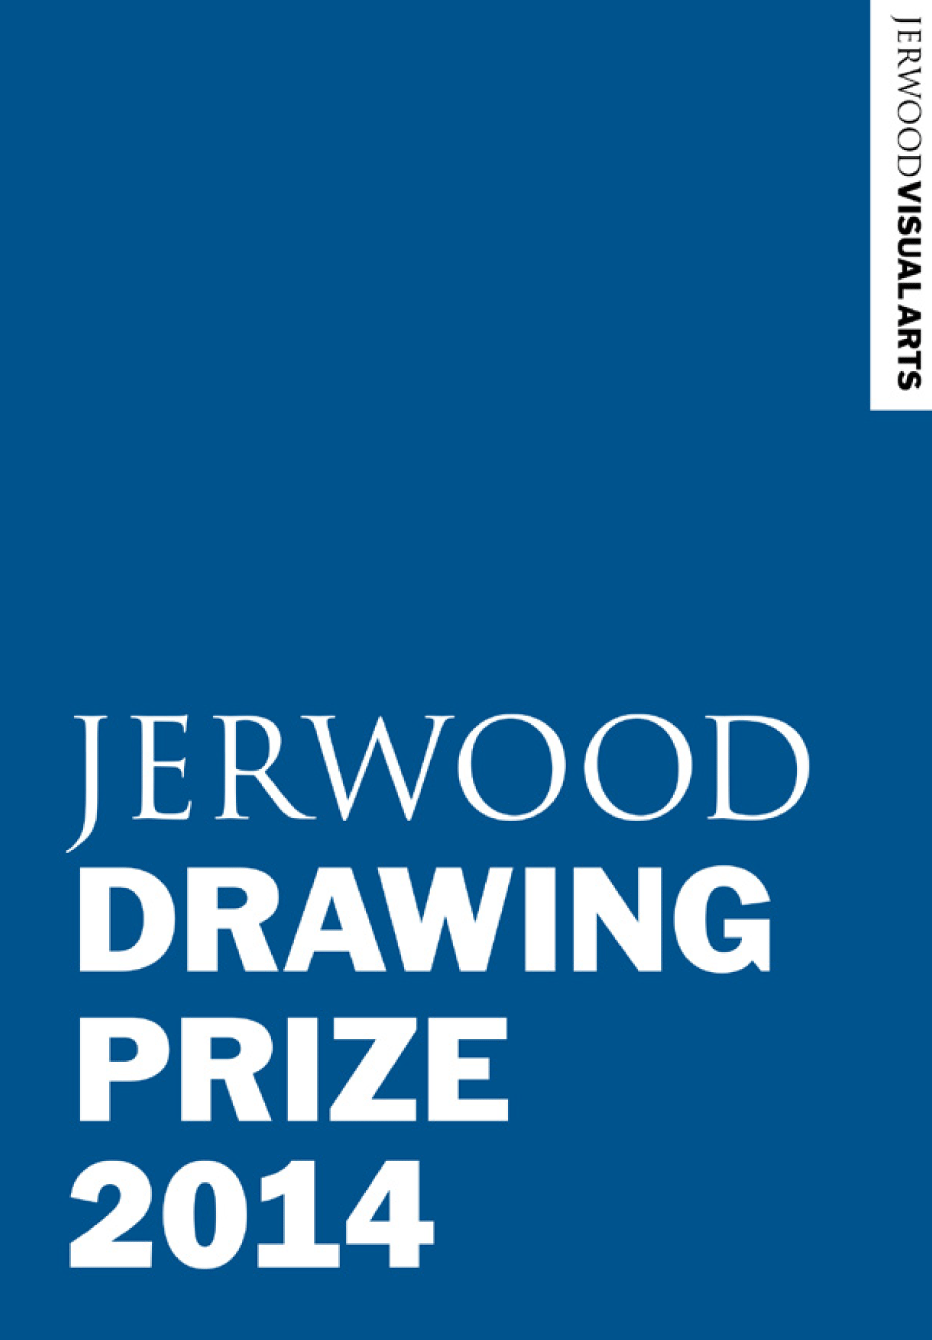 Jerwood Drawing Prize 2014 featured publication